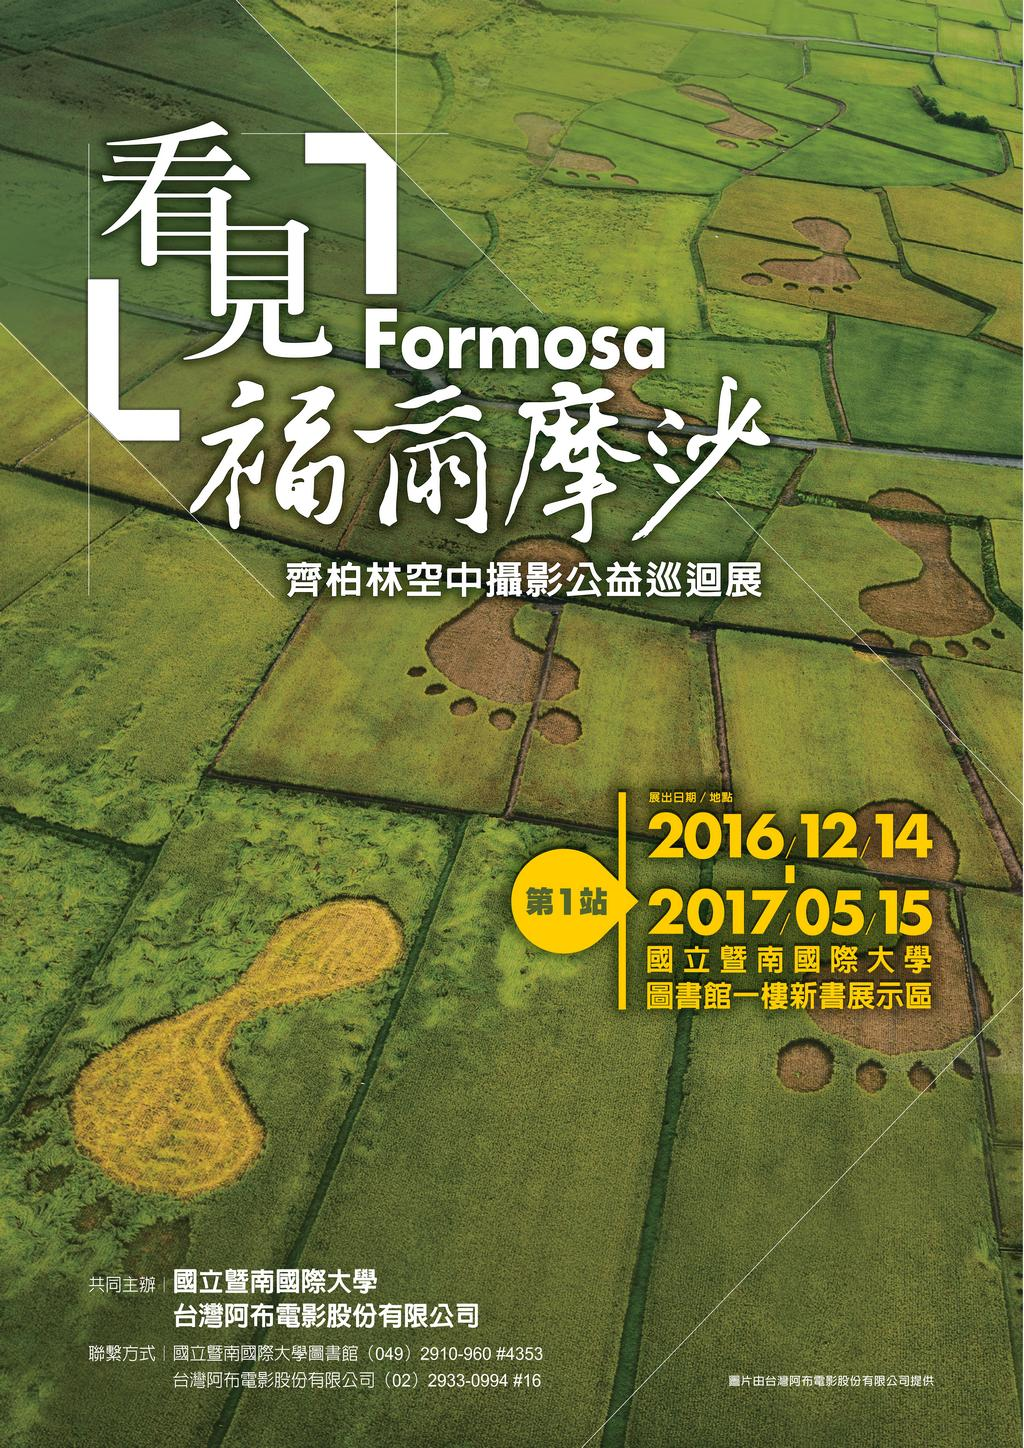 see formosa photo